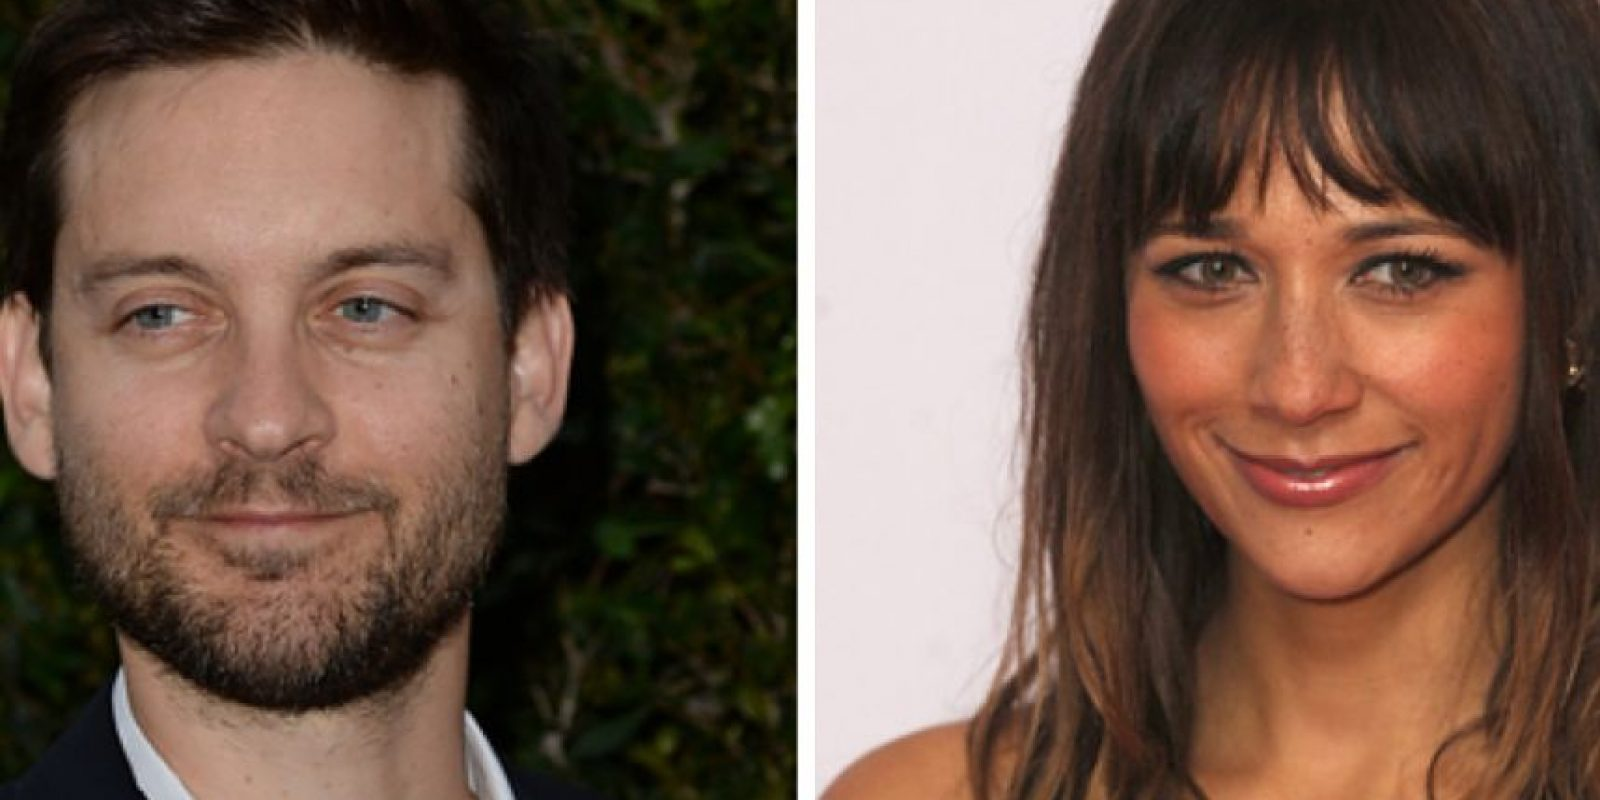 Tobey McGuire salió con Rashida Jones de 1997 a 1999. Foto: vía Getty Images